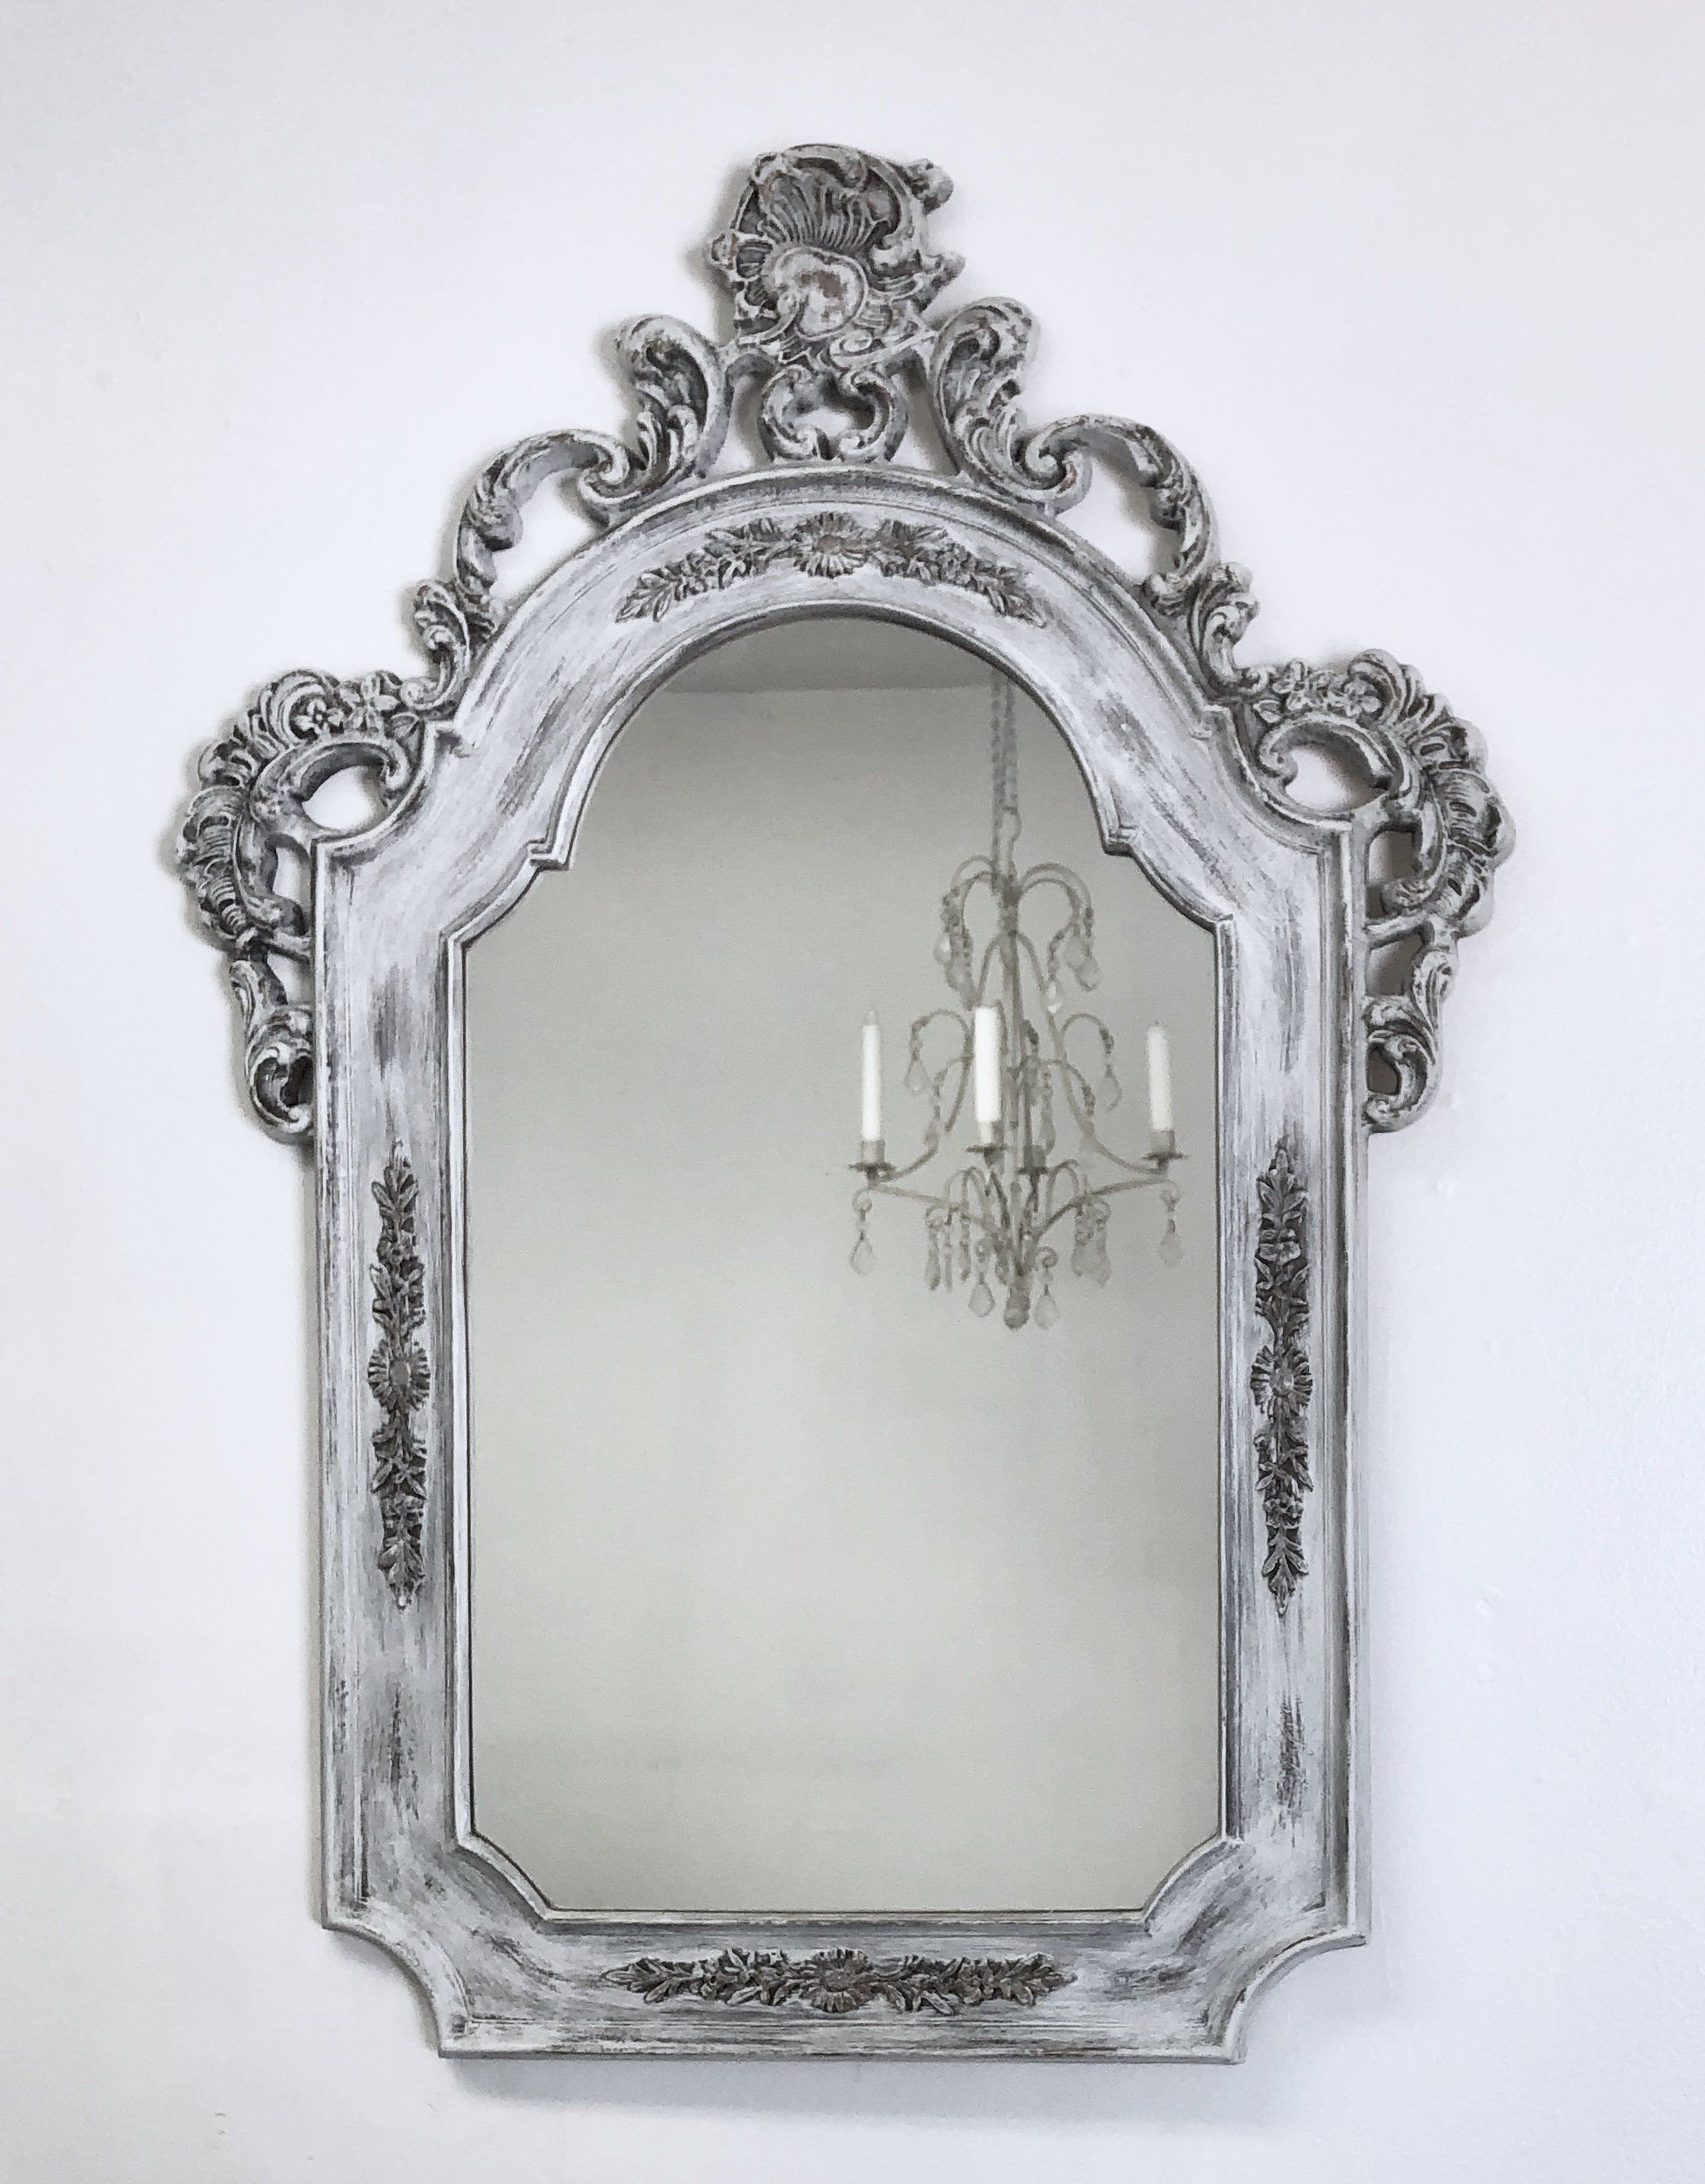 Antique Framed Mirror For Sale 32 X23 Distressed White Ornate Baroque Framed Mirror Shabby Chic Nurs Shabby Chic Mirror Frame Shabby Chic Mirror Ornate Mirror